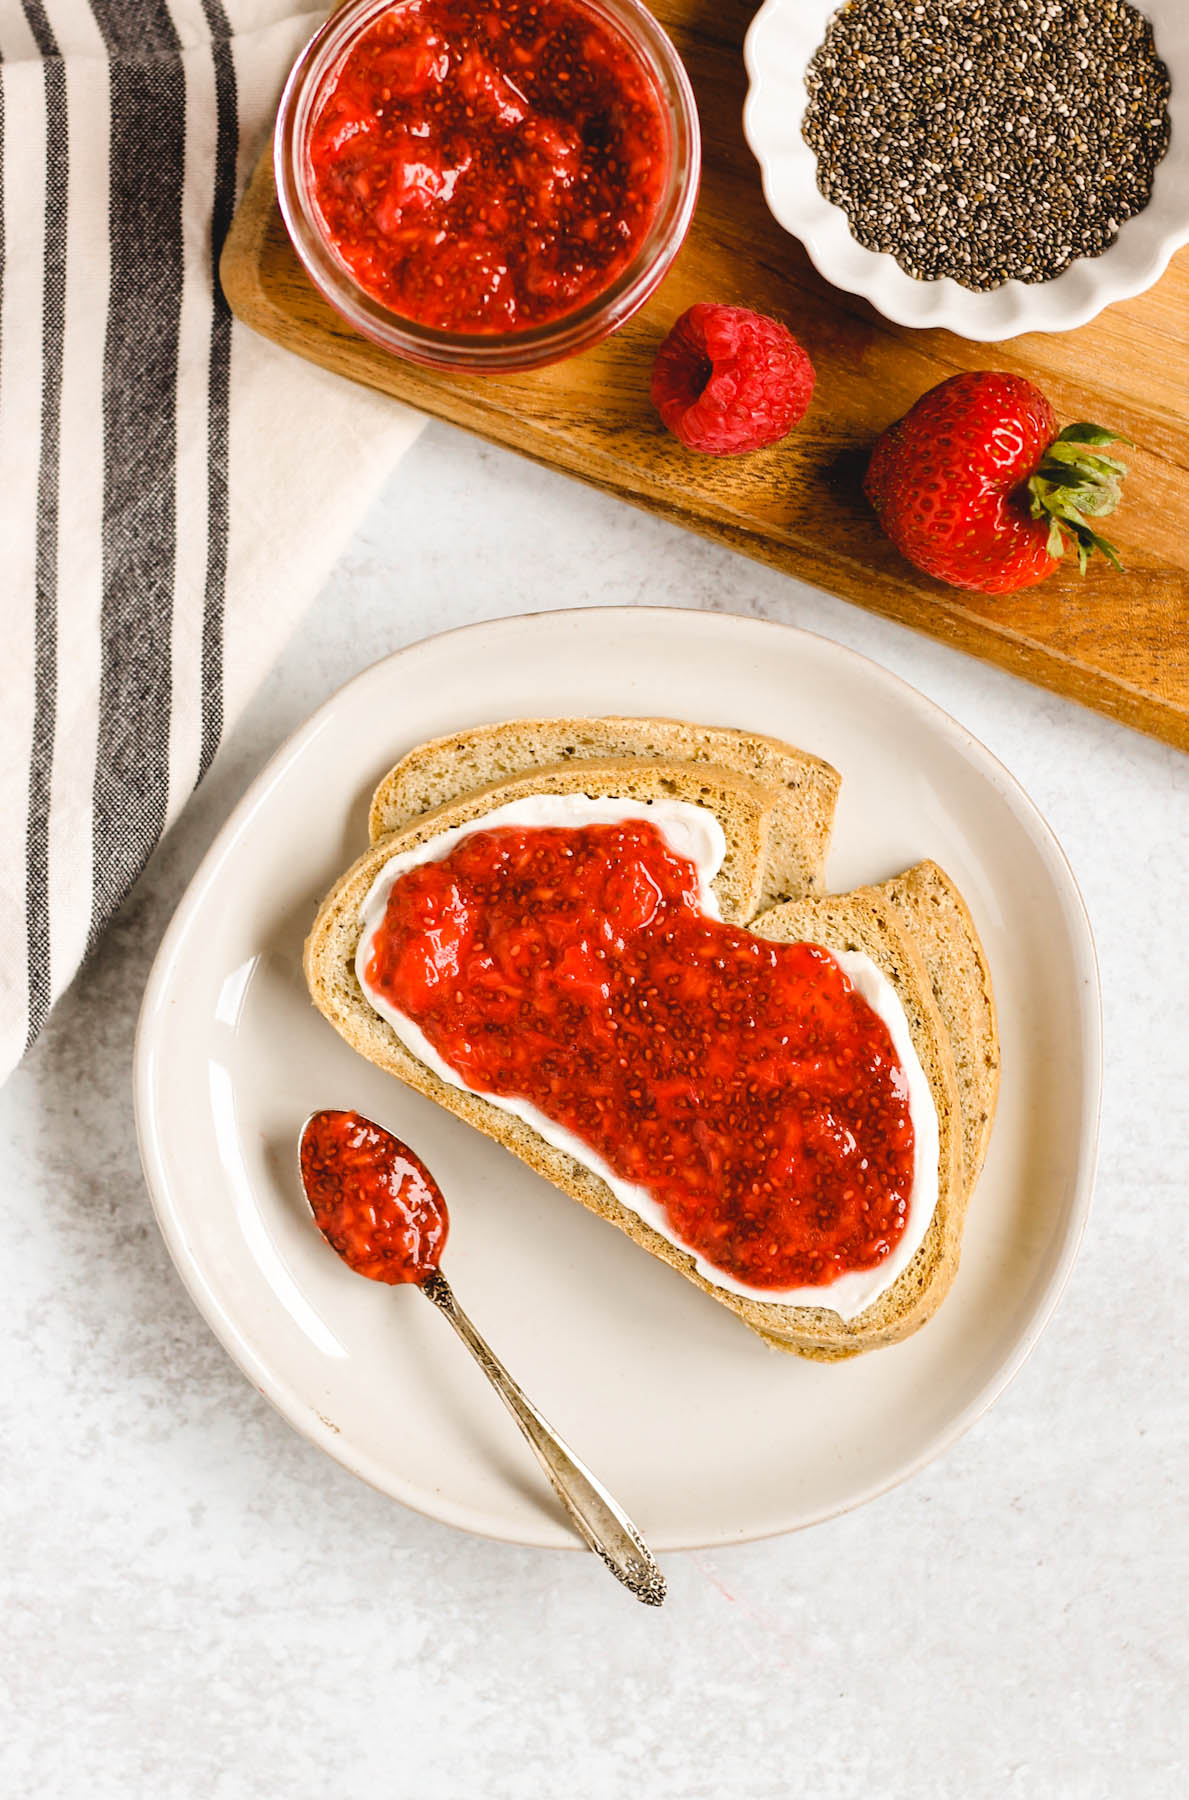 two slices of toast on a plate with cream cheese and berry chia jam spread on toast